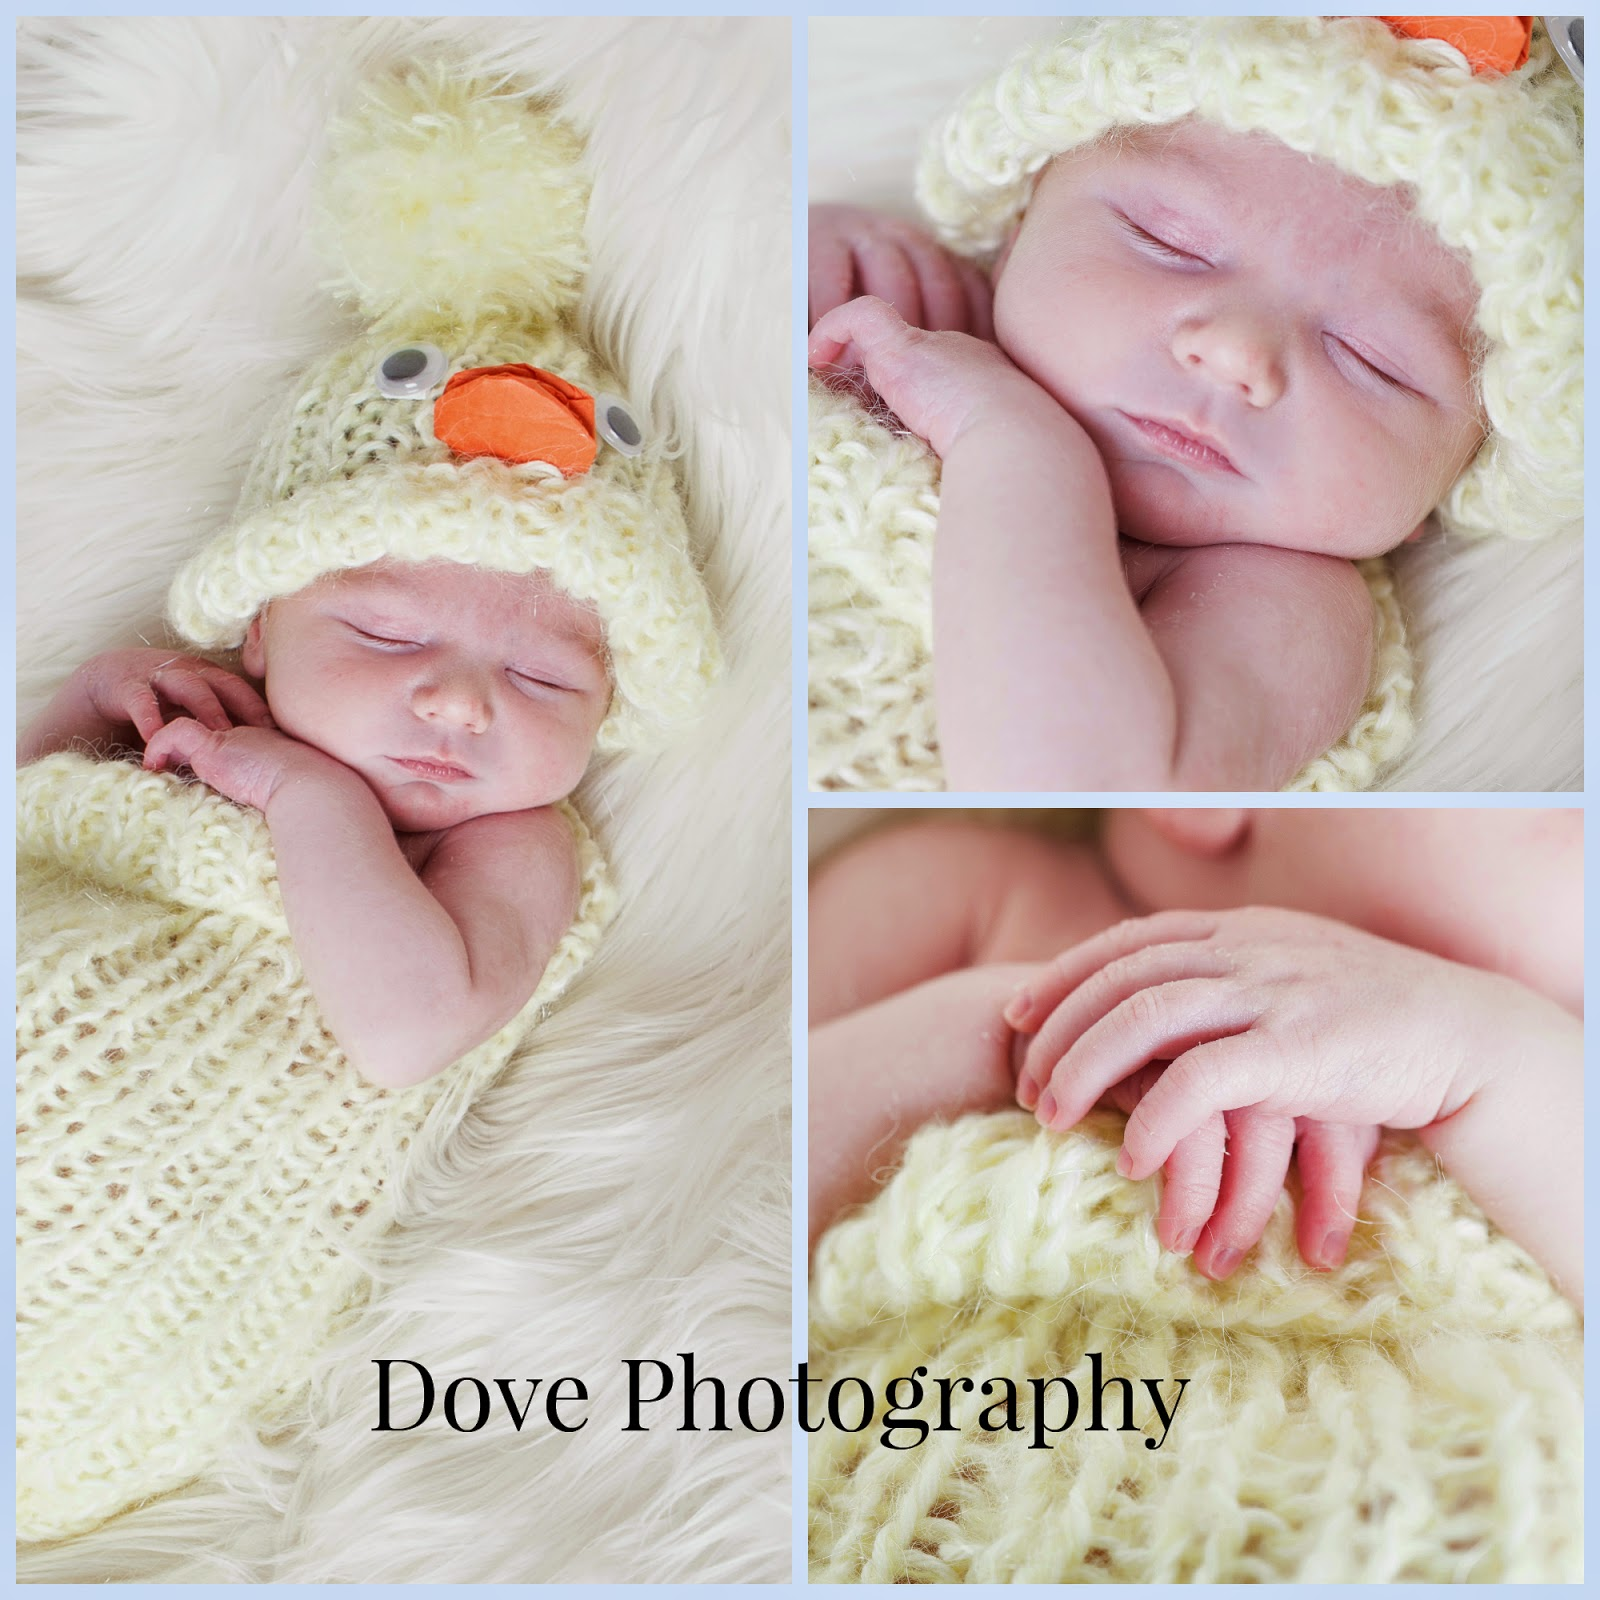 Dove Photography Newborn Photography Blackpool